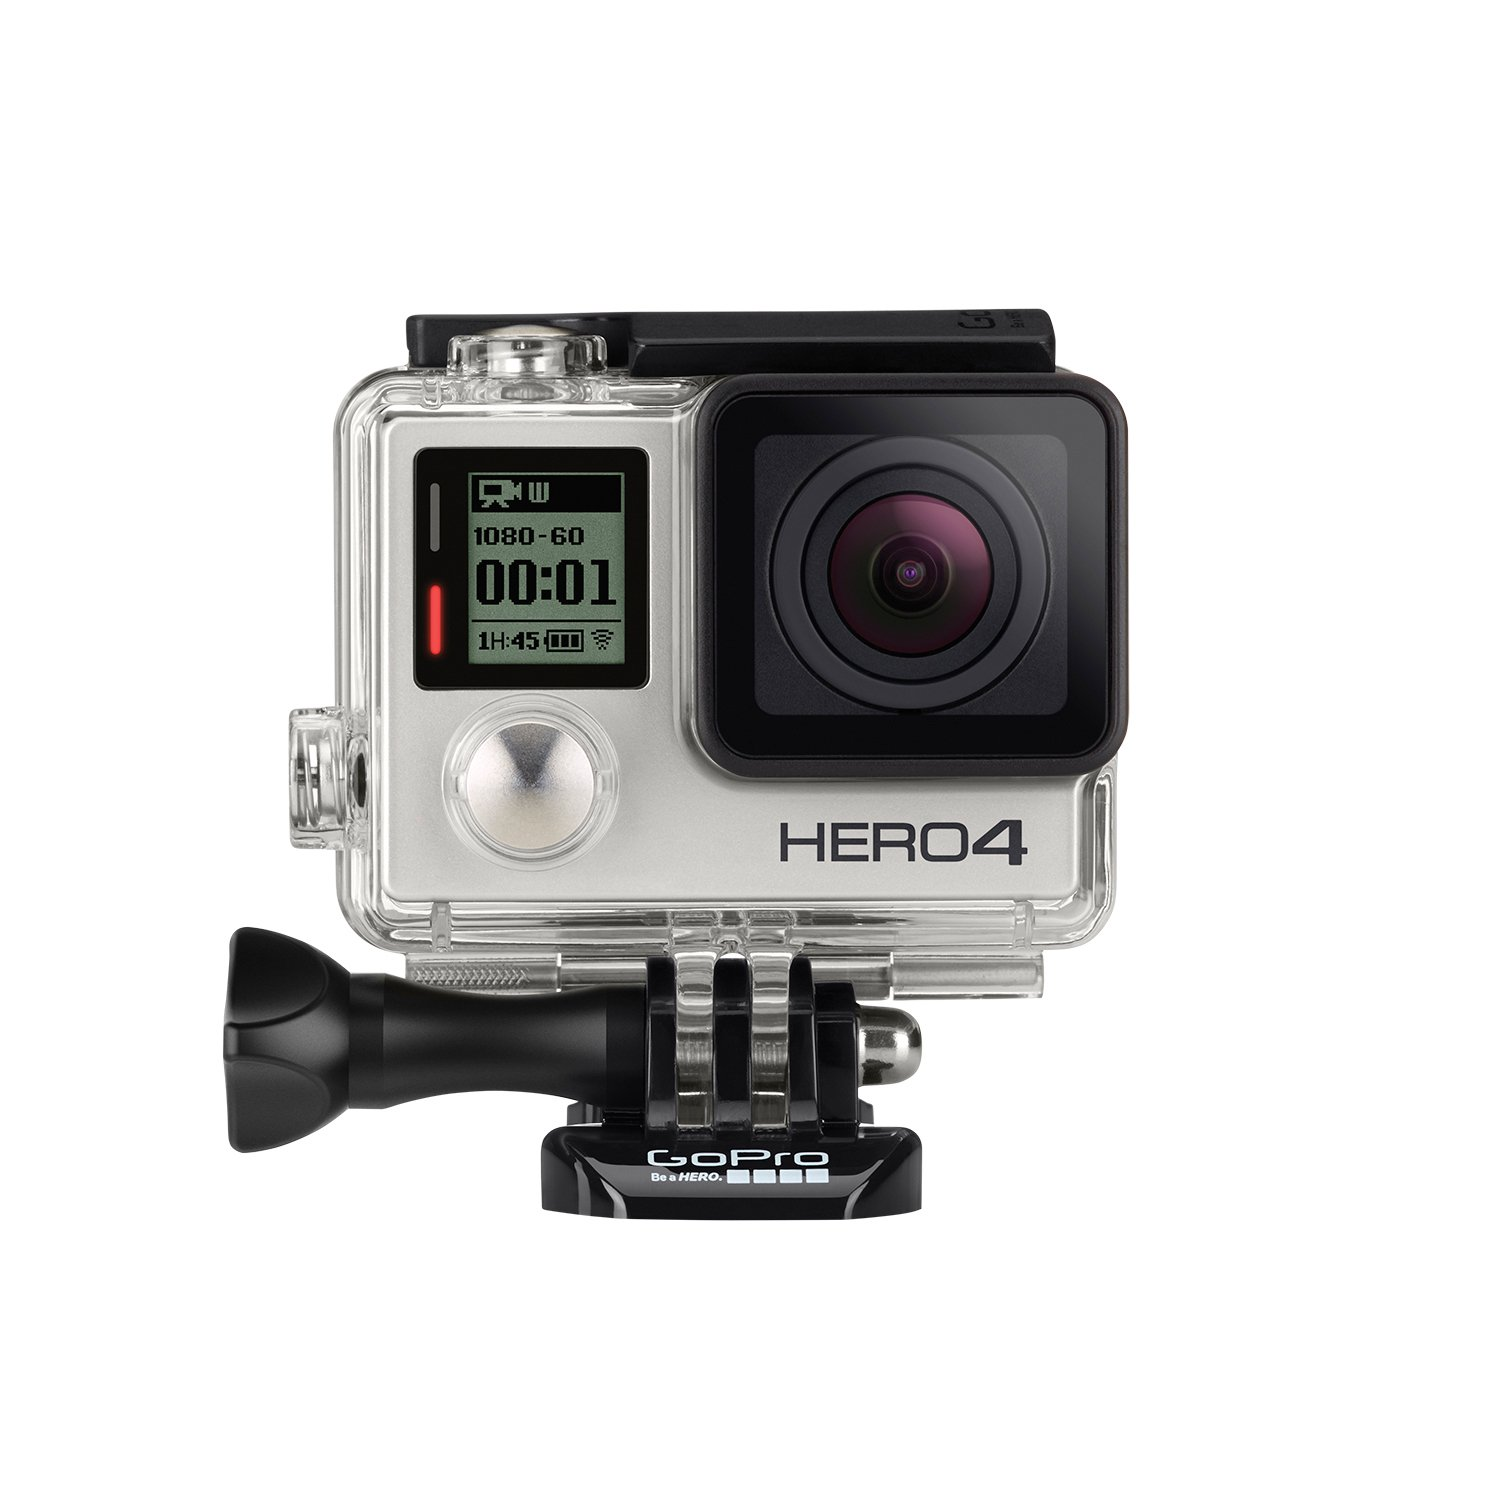 Amazon.com : GoPro HERO4 Silver : Camera & Photo